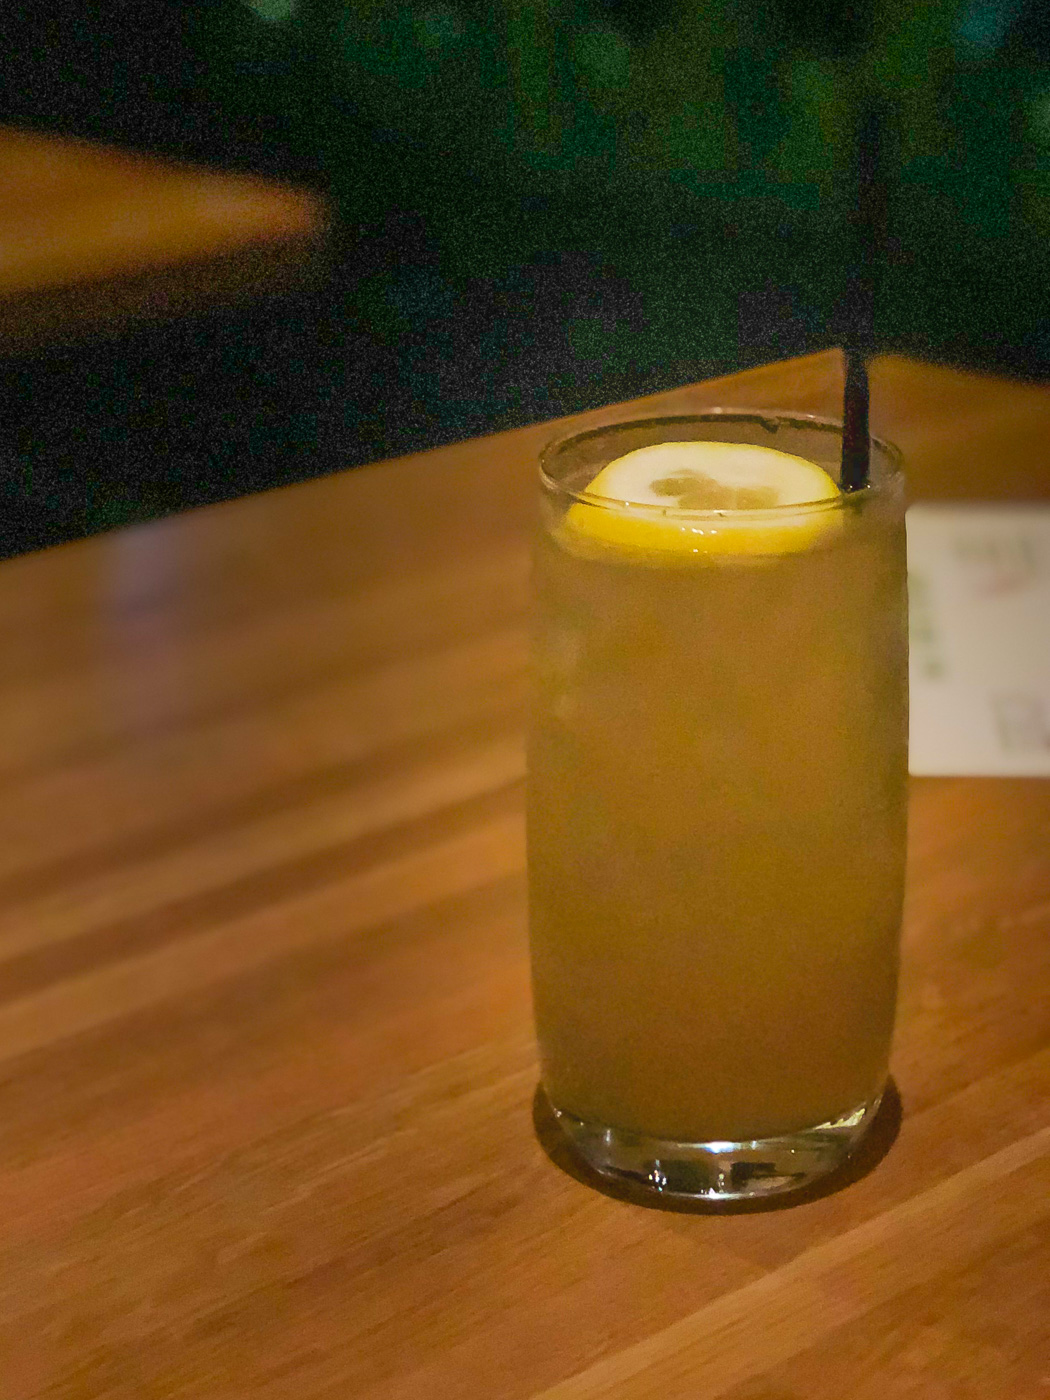 A glass of iced tea garnished with lemon and a straw on a wooden table